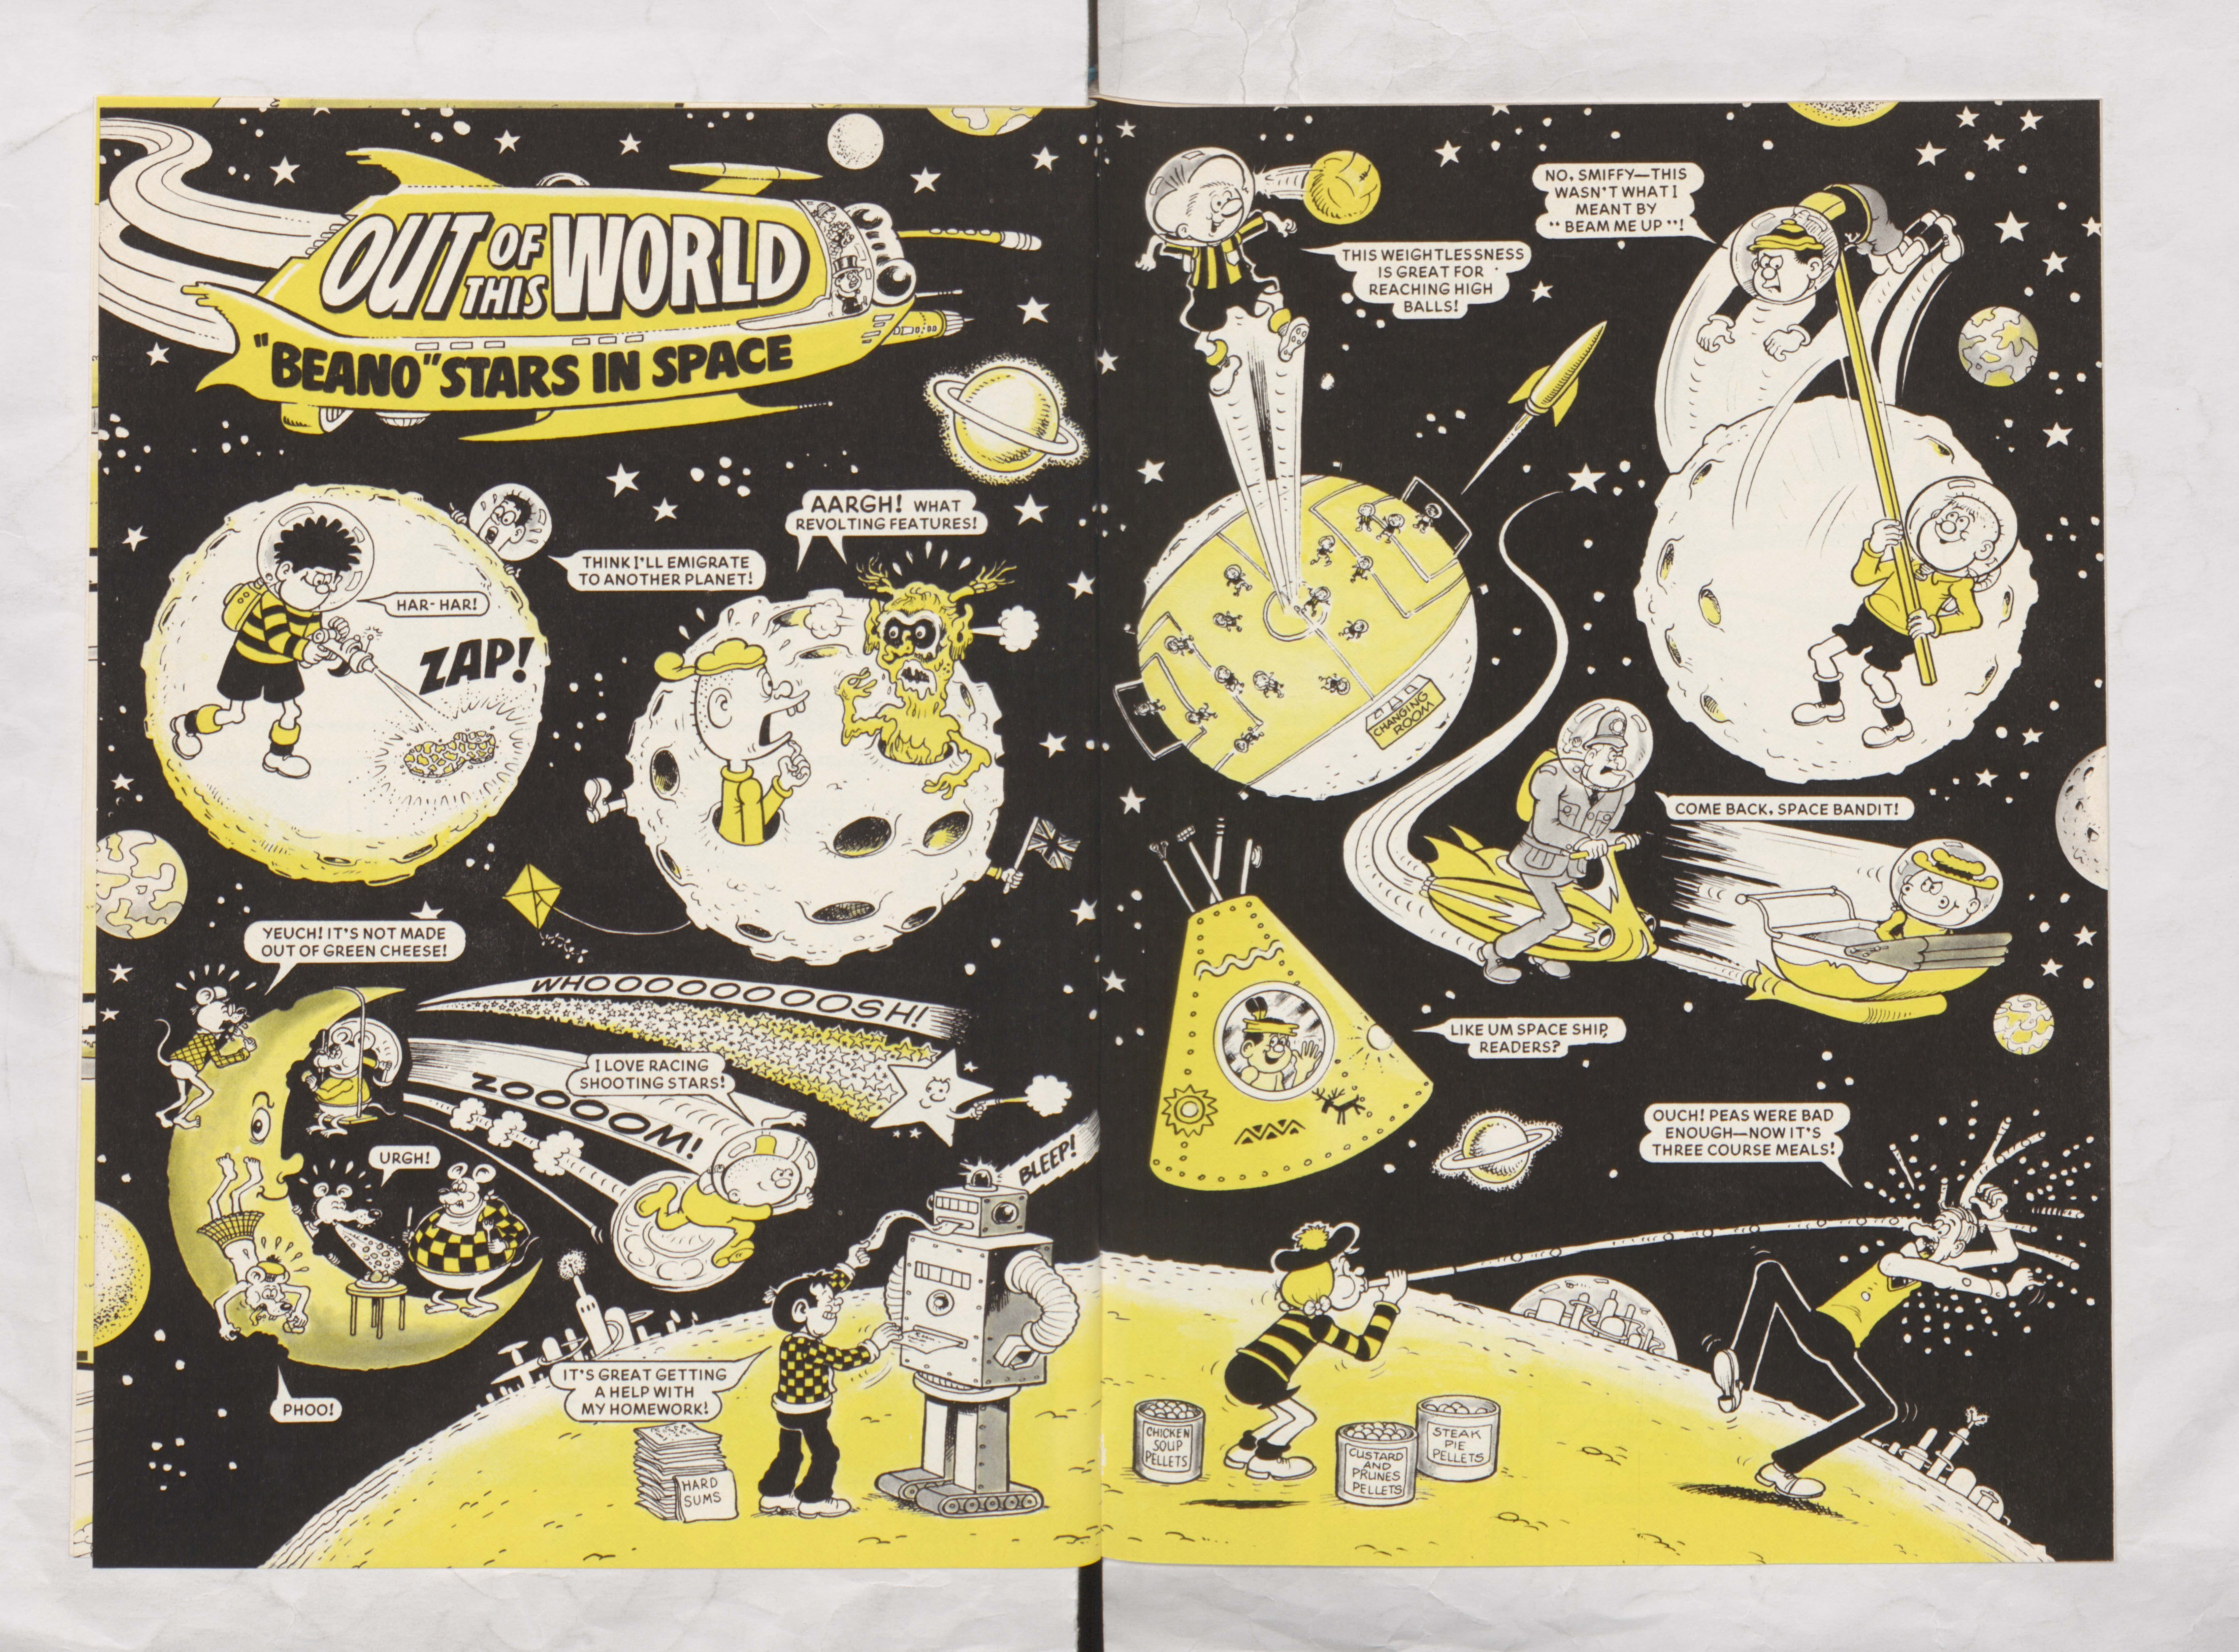 Out of this world - Beano Book 1984 Annual